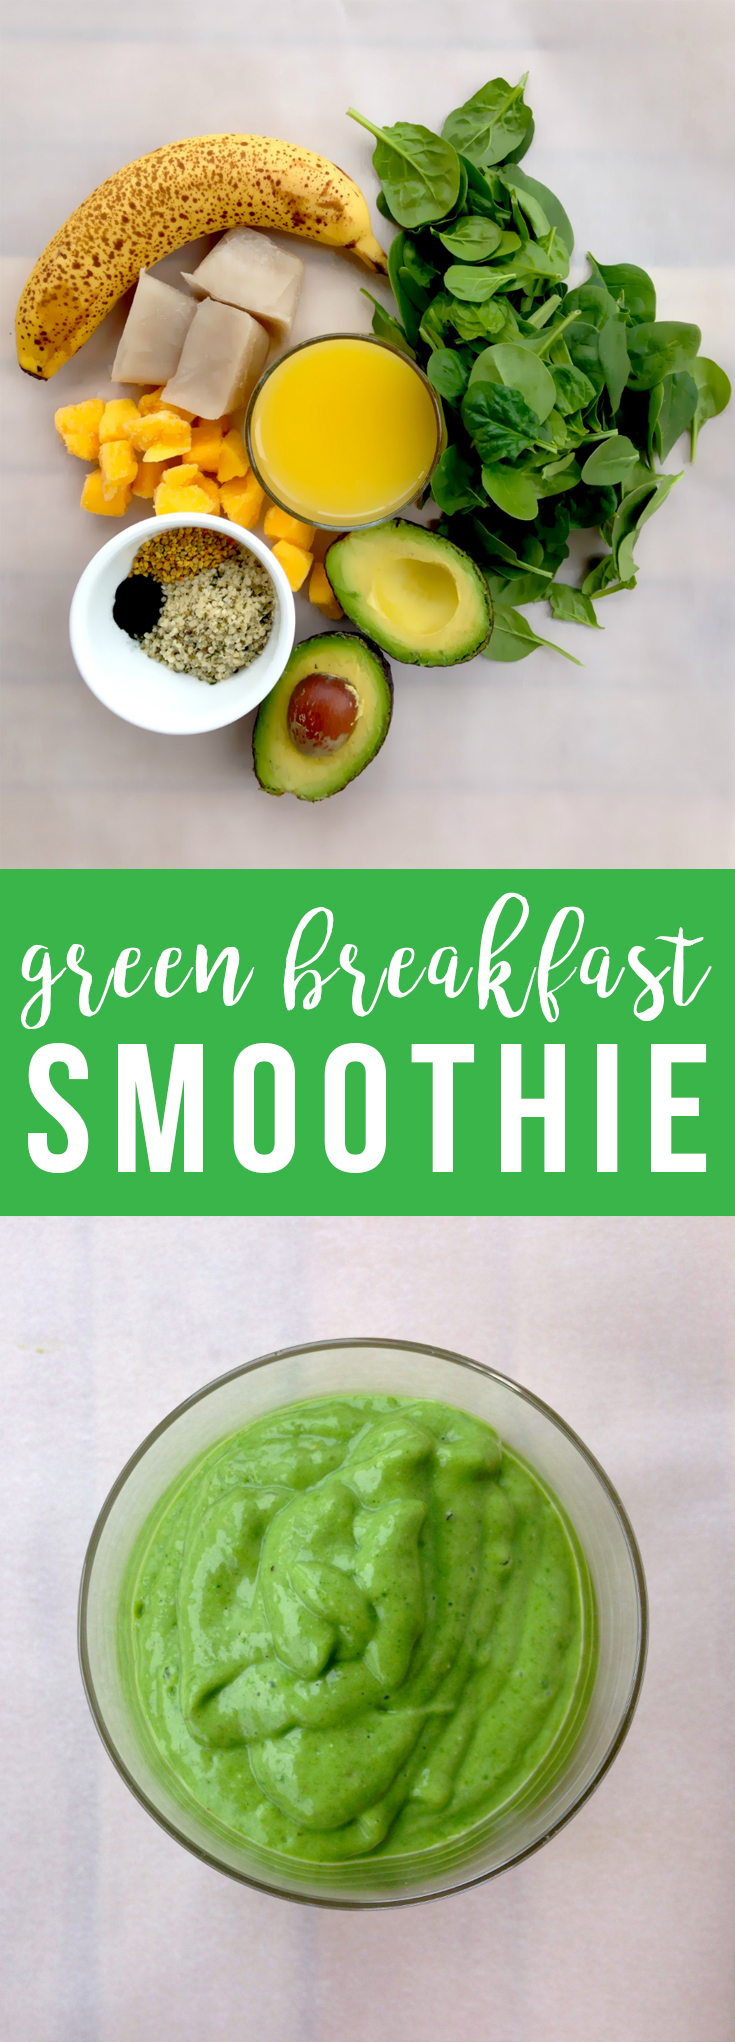 This creamy, frosty green breakfast smoothie with a hint of sweetness is packed with nutrition for a refreshing start to your day.